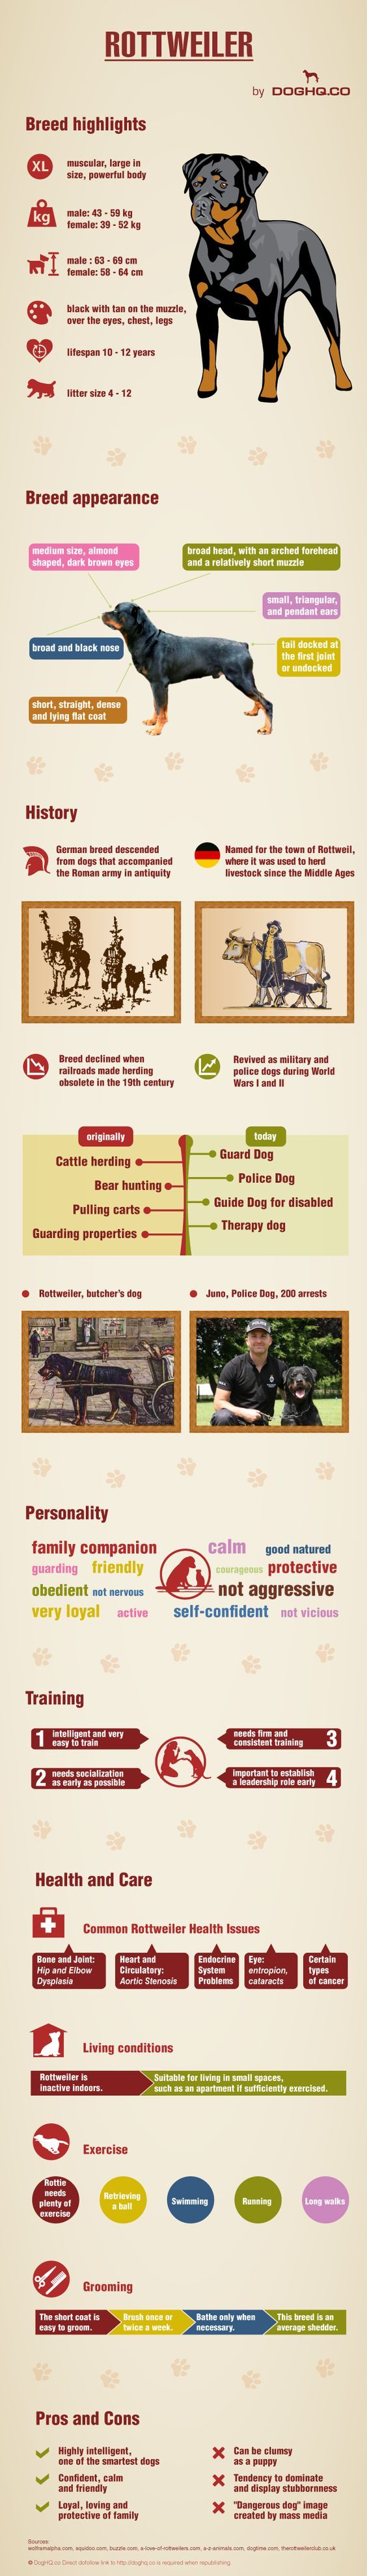 DogHQ presents the following infographic that provides everything you ever wanted to know about the Rottweiler canine breed, which highlights Rottweiler breed facts and trivia.